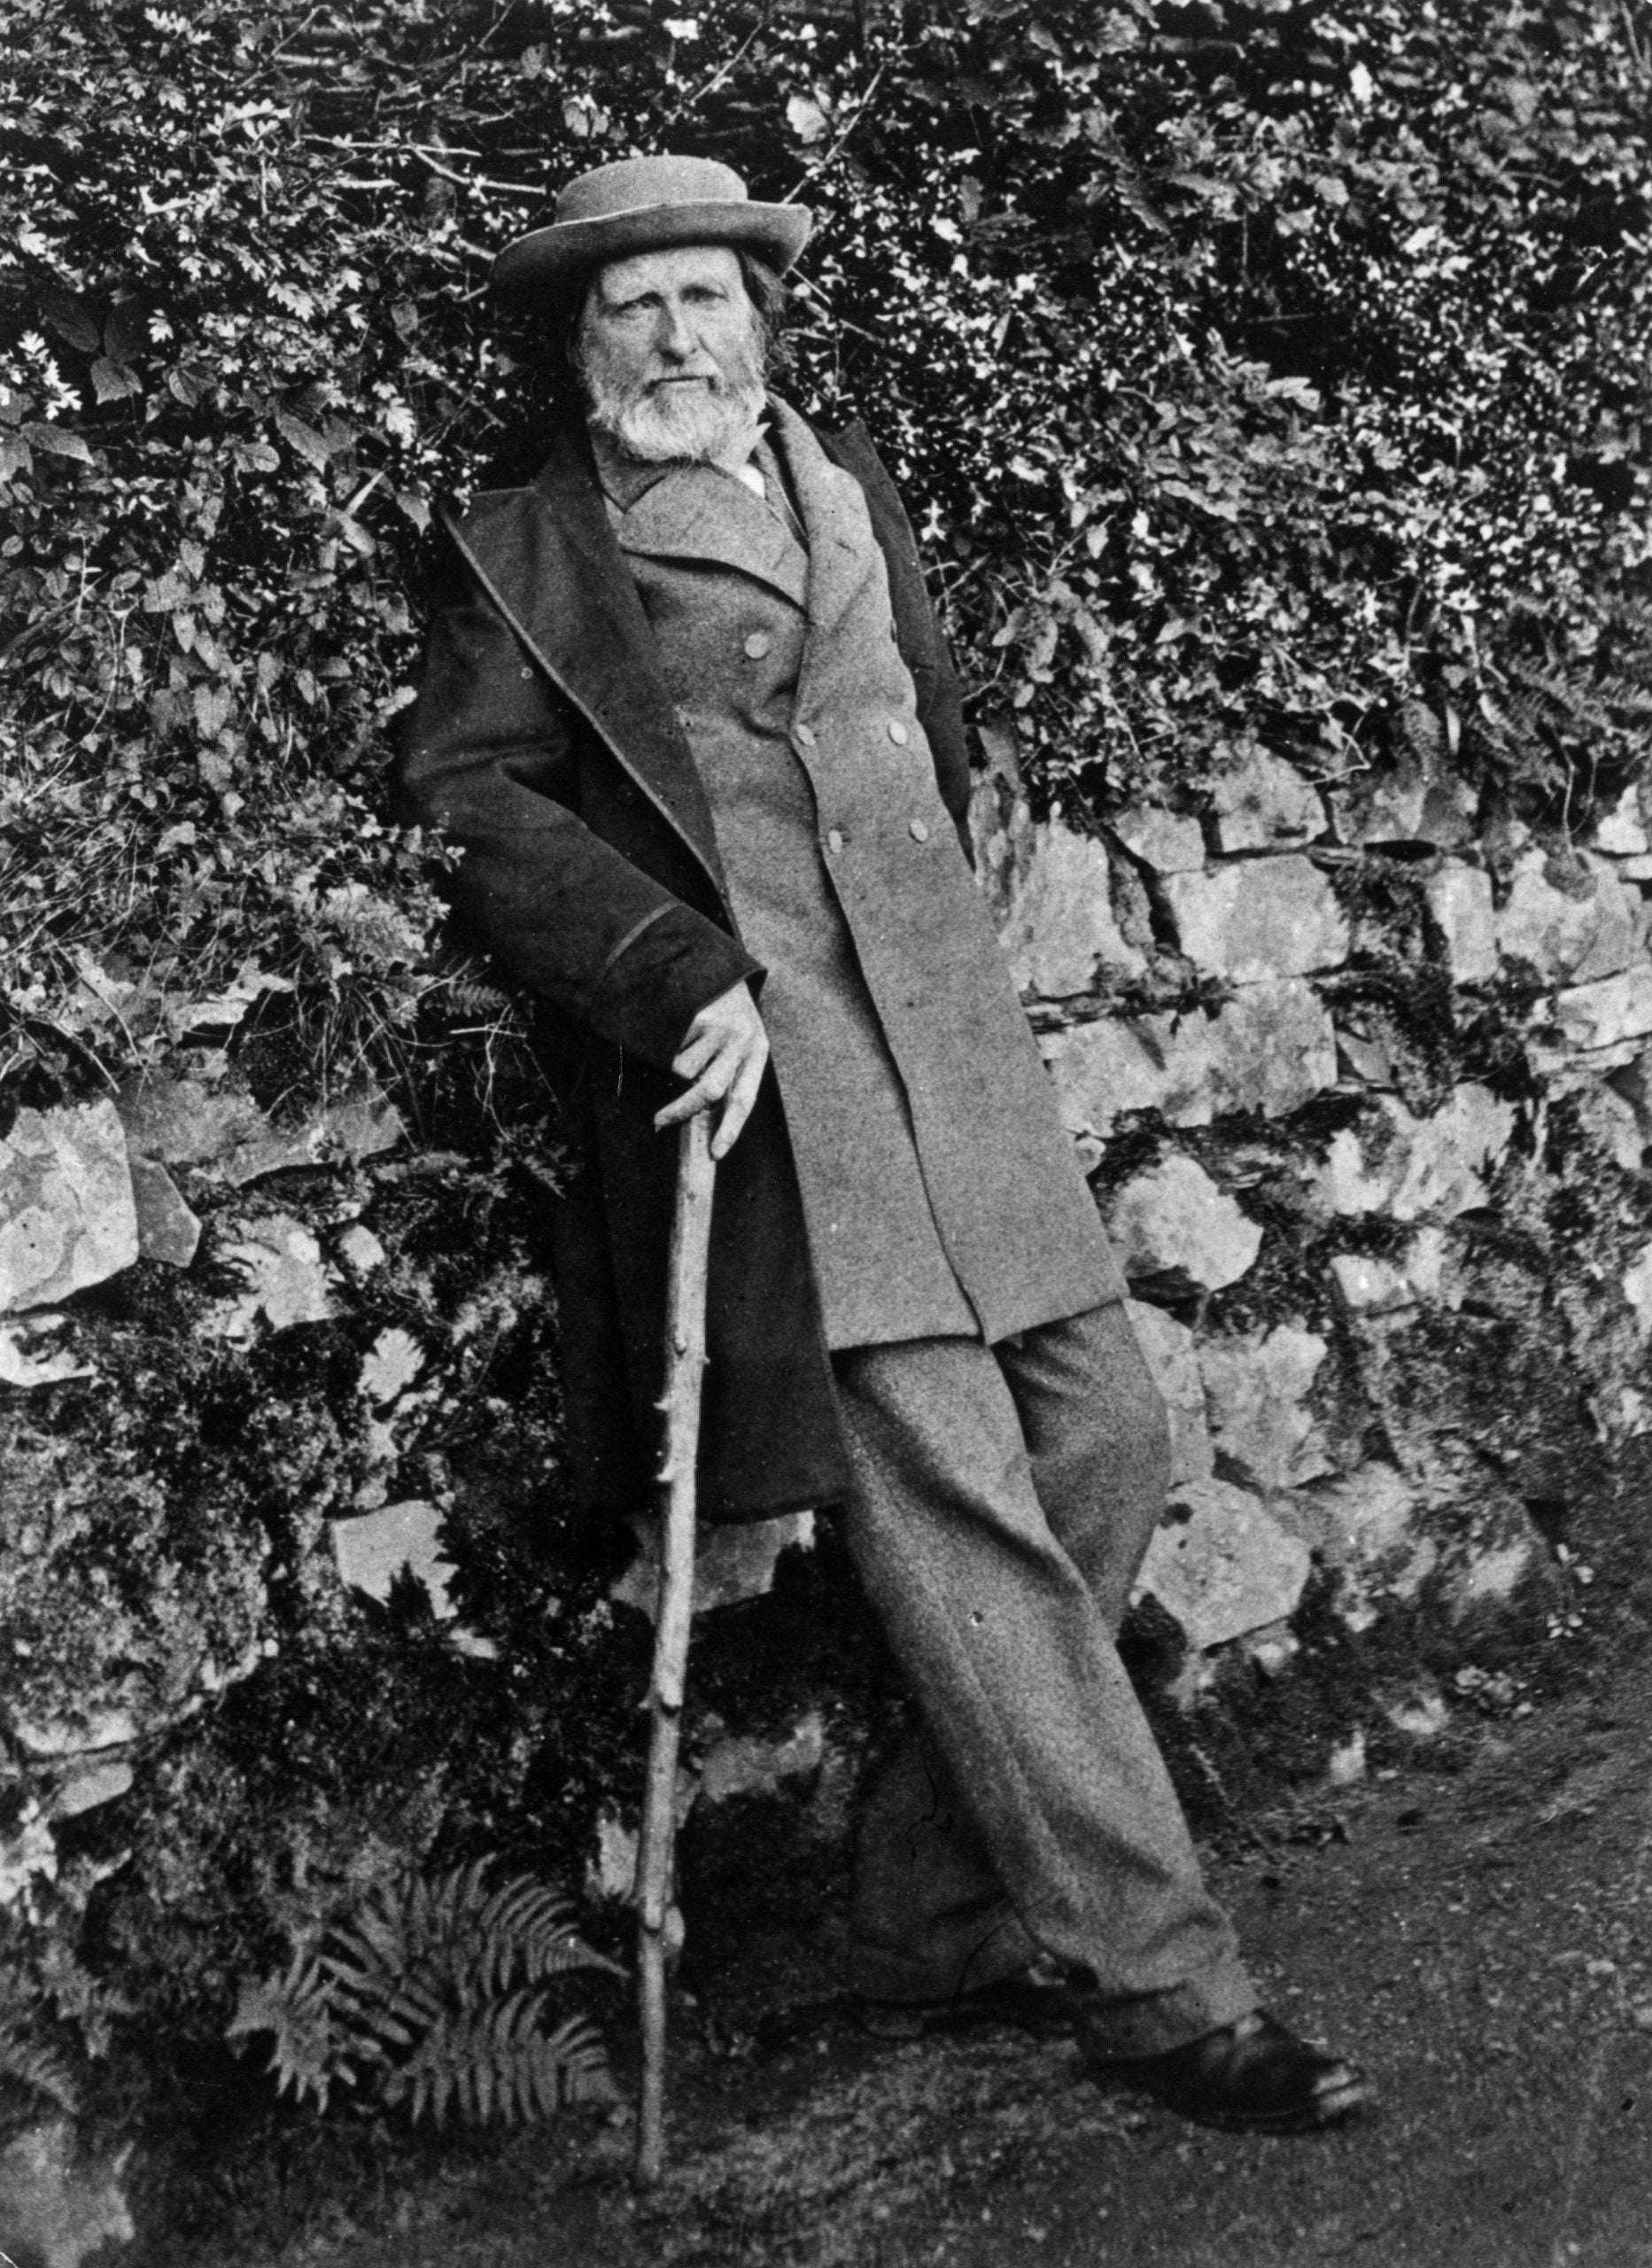 How a school visit prompted me to re-assess John Ruskin